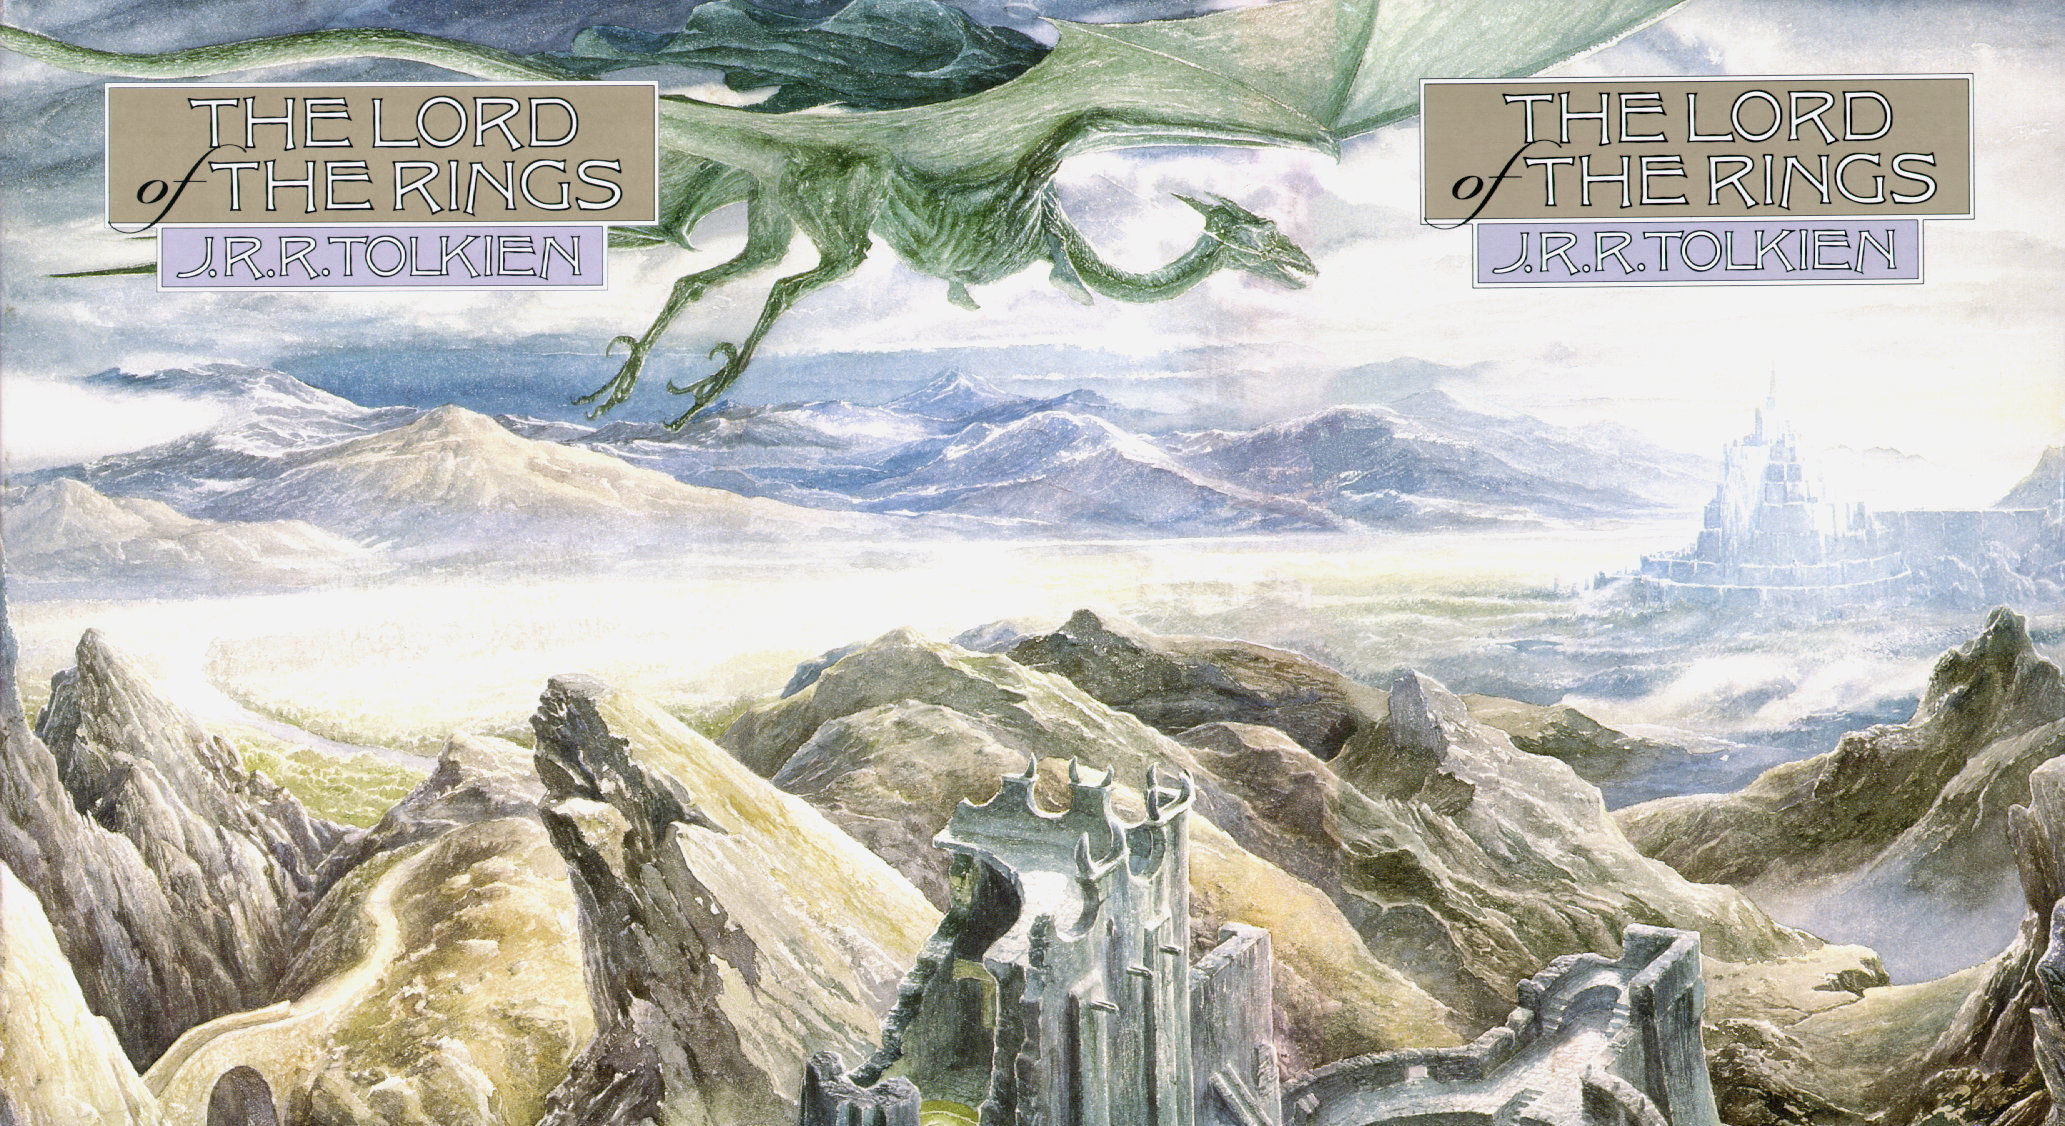 an analysis of the lord of the rings by jrrtolkien